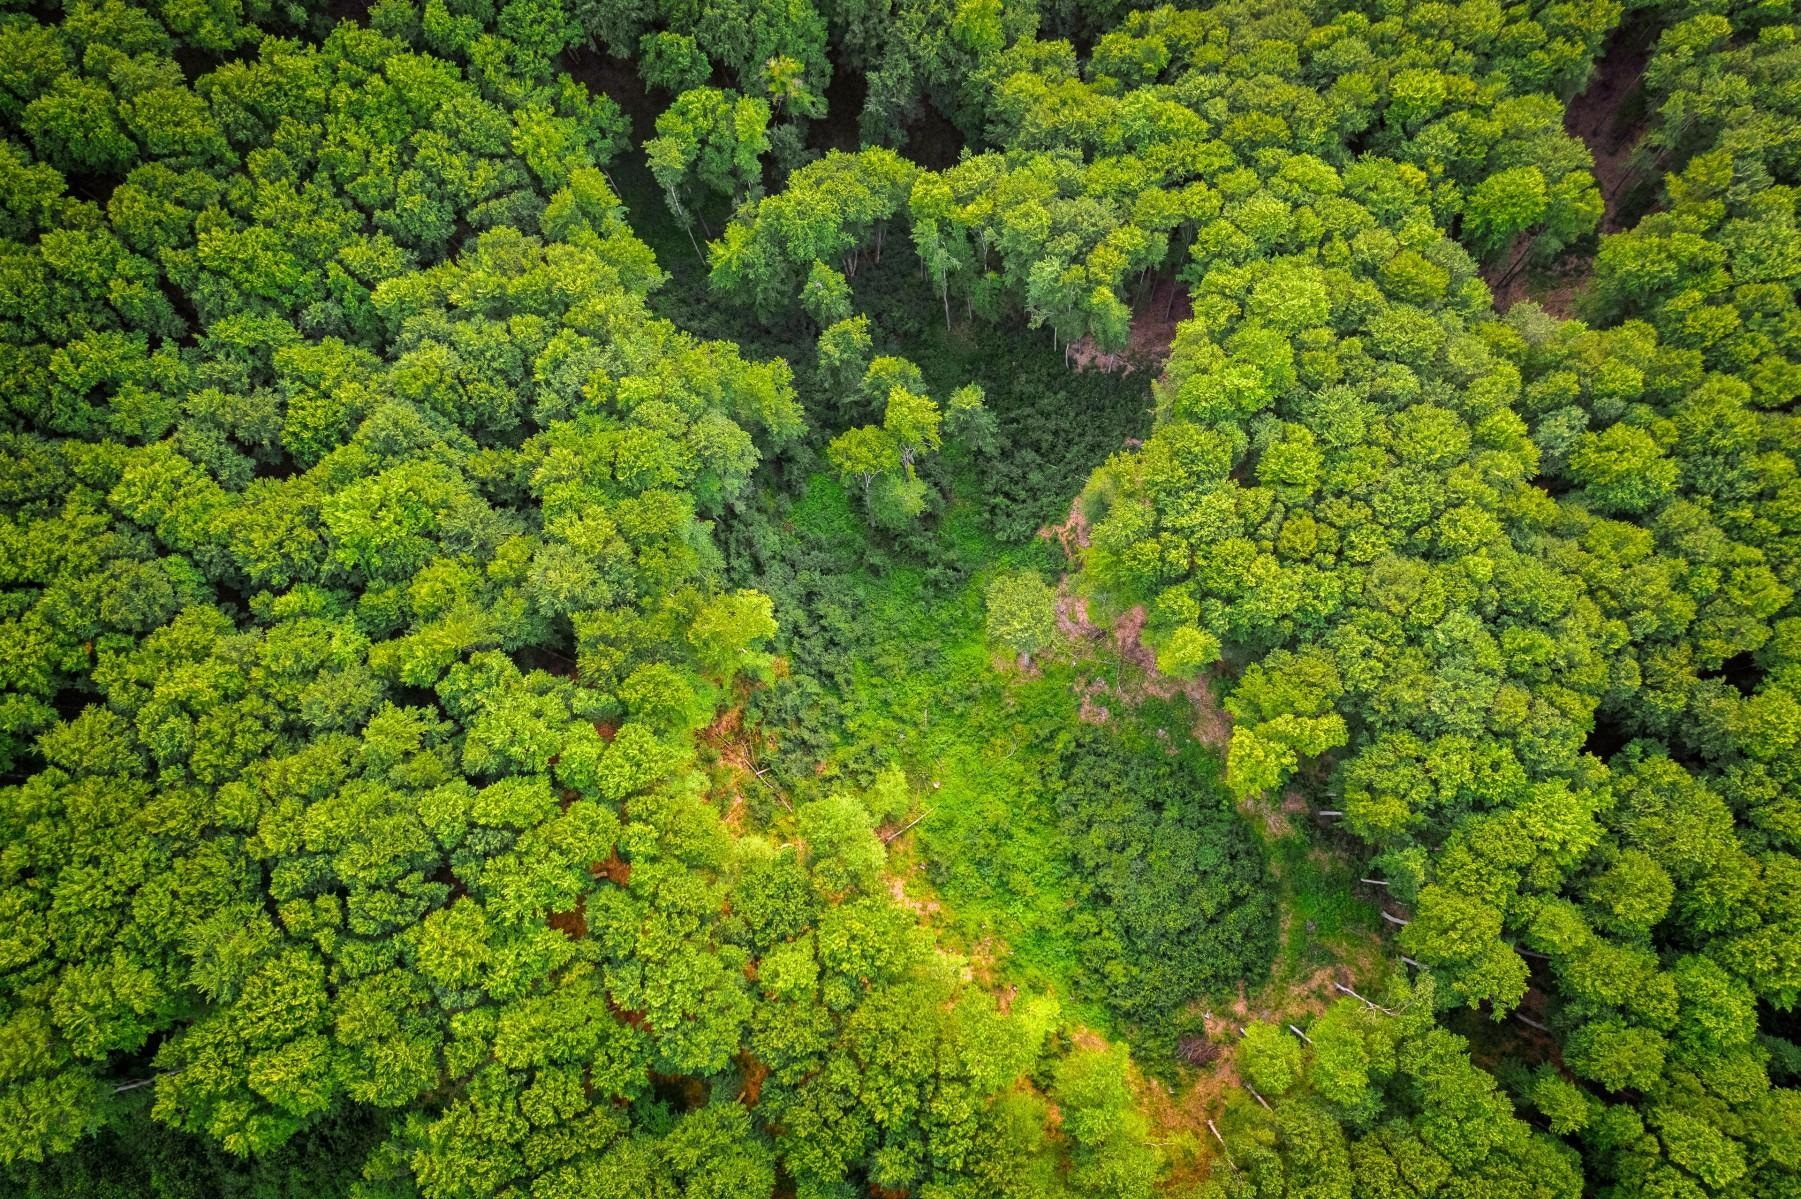 Planting and Protecting Trees can Help Mitigate Climate Change